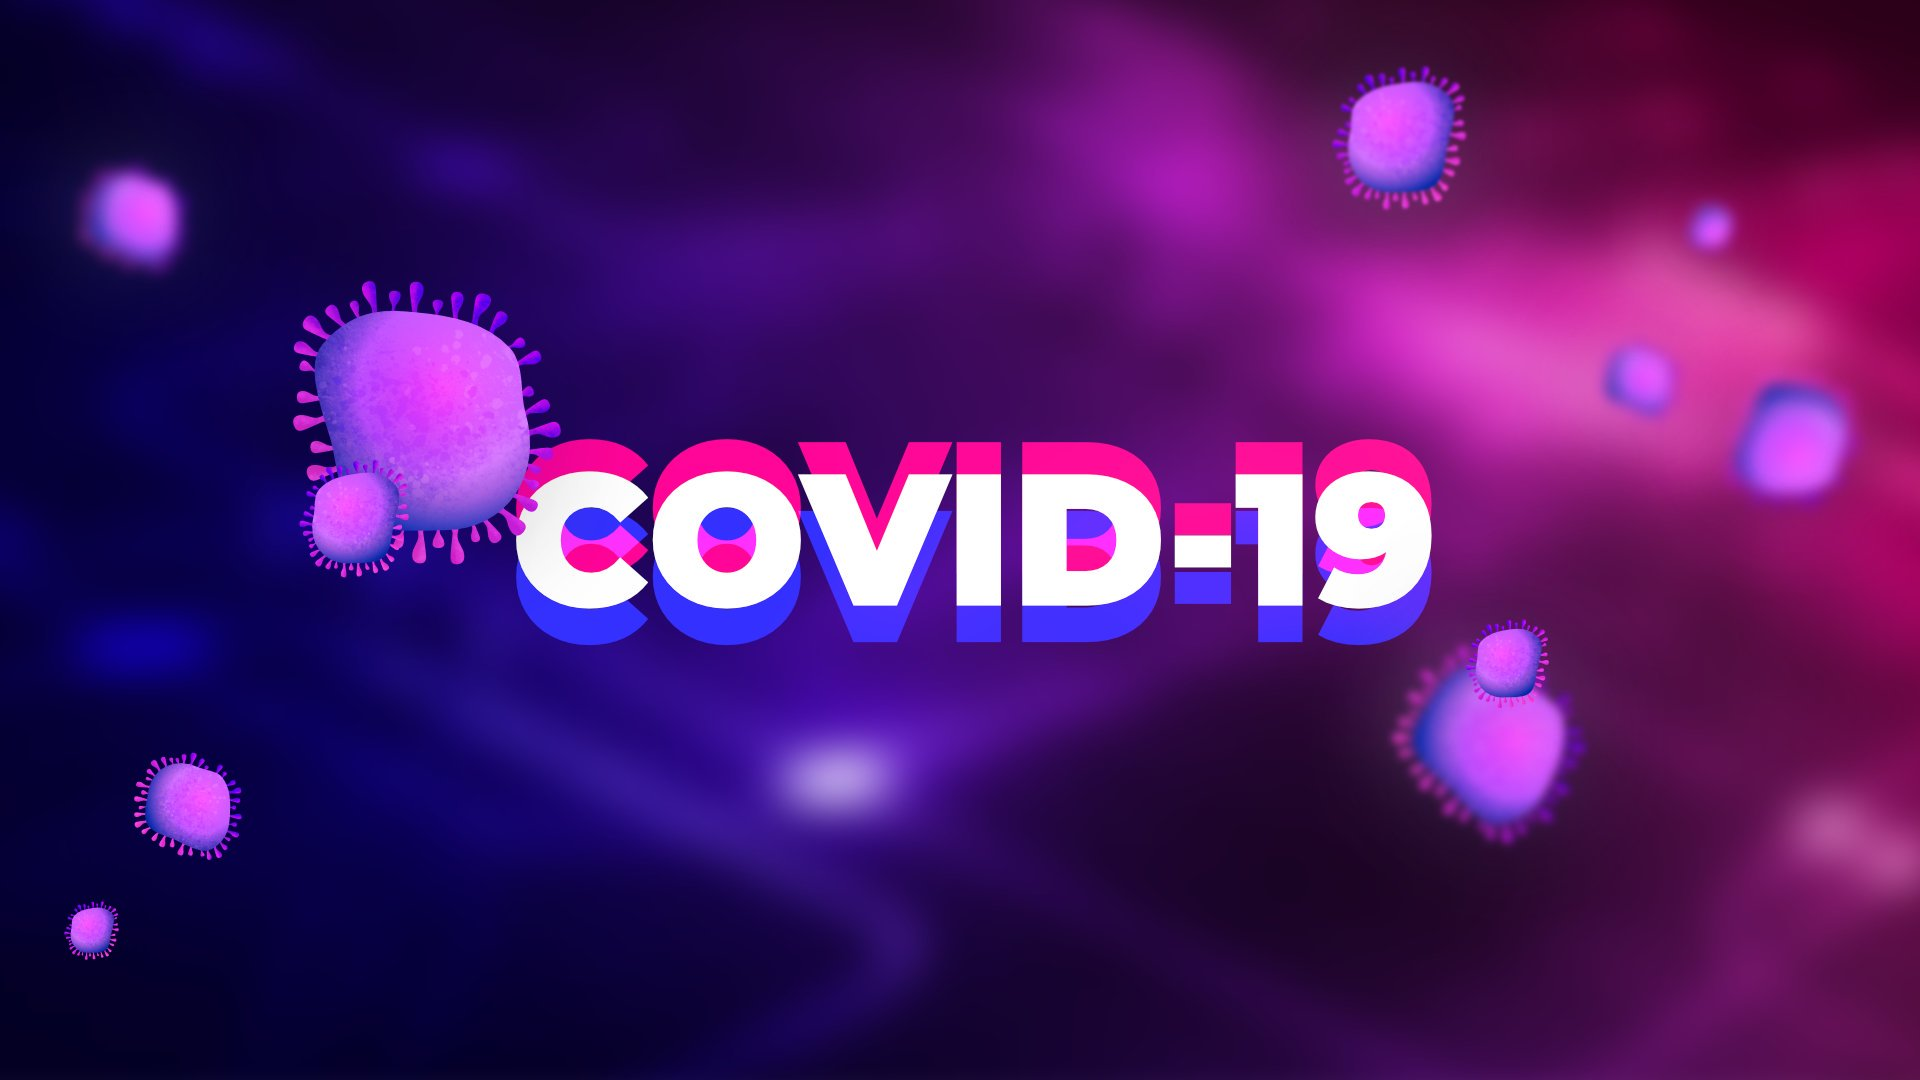 2020People The inscription COVID 19 coronavirus on a purple background 142387